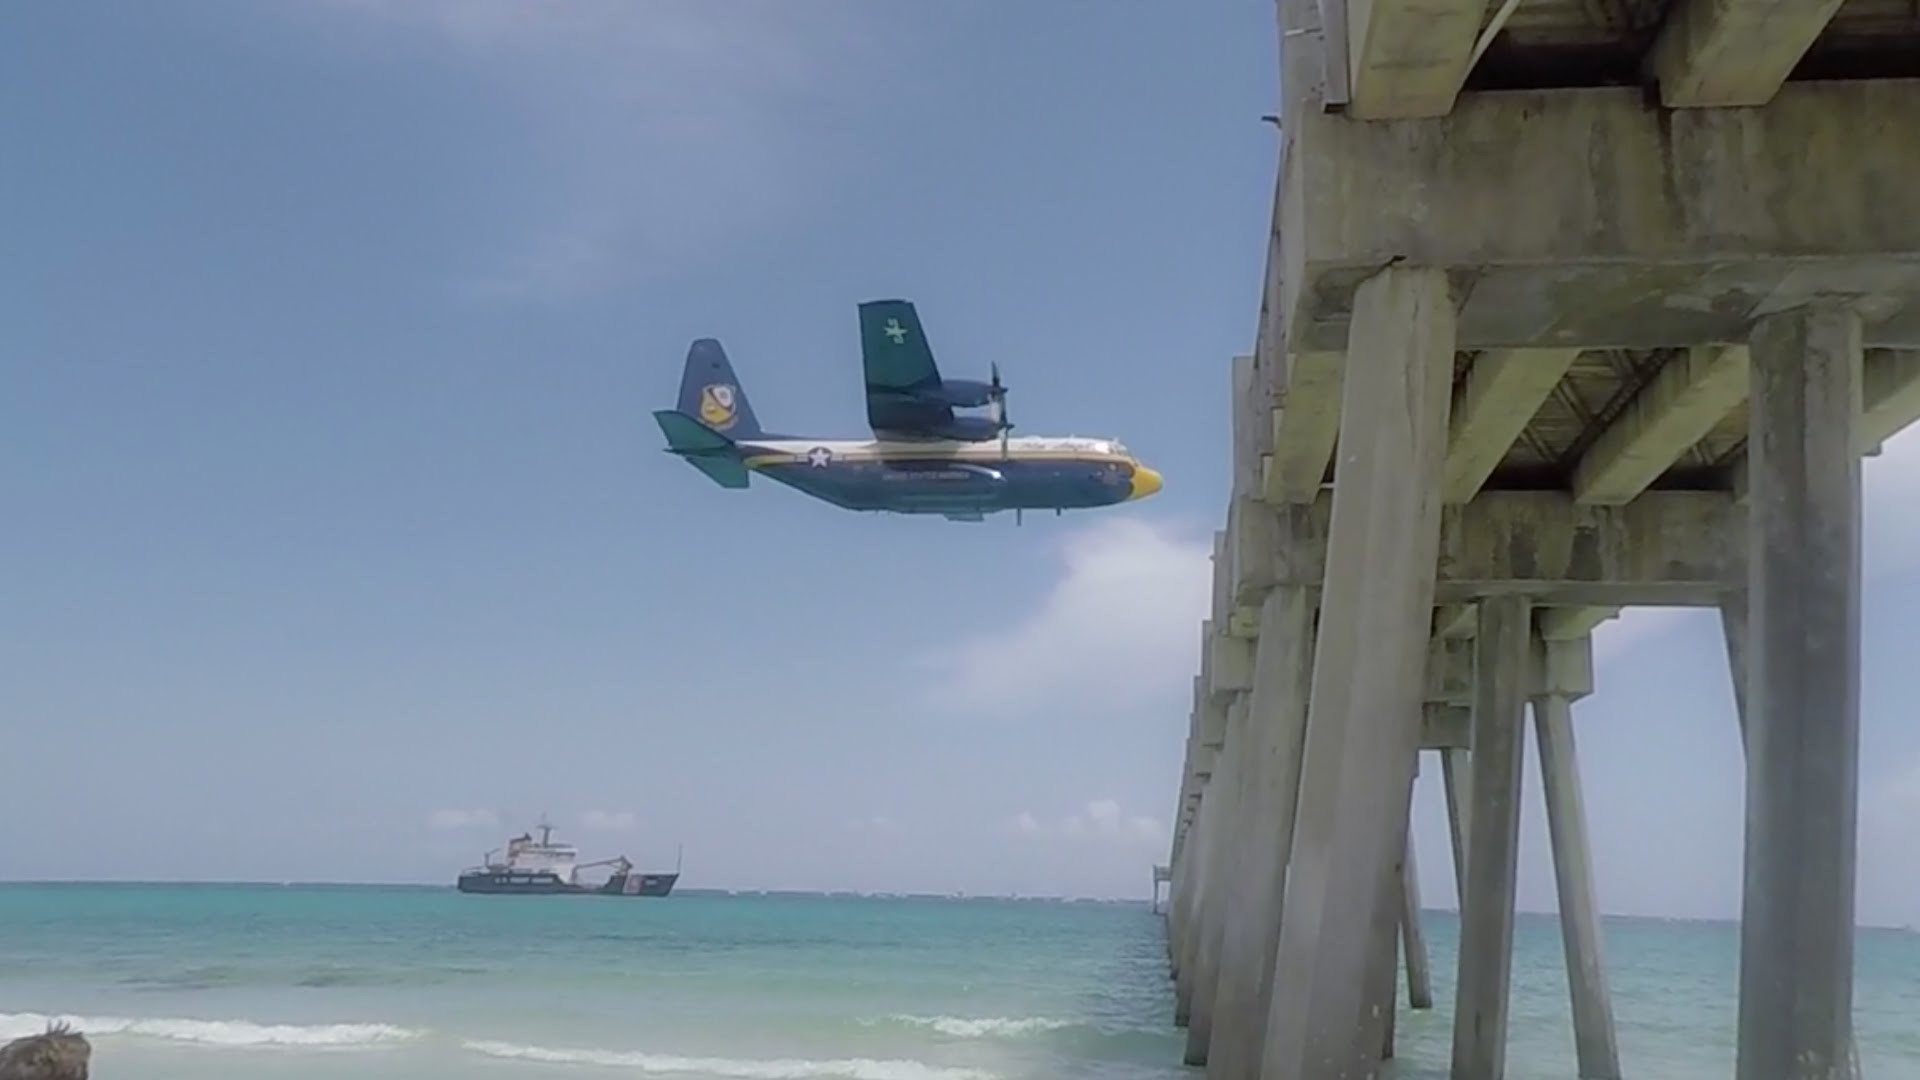 1920x1080 Blue Angels Air Show Pensacola Beach 2015 - U.S. Navy Blue Angels Schedule  - Browse The Blue Angels schedules and news, watch videos and photos.